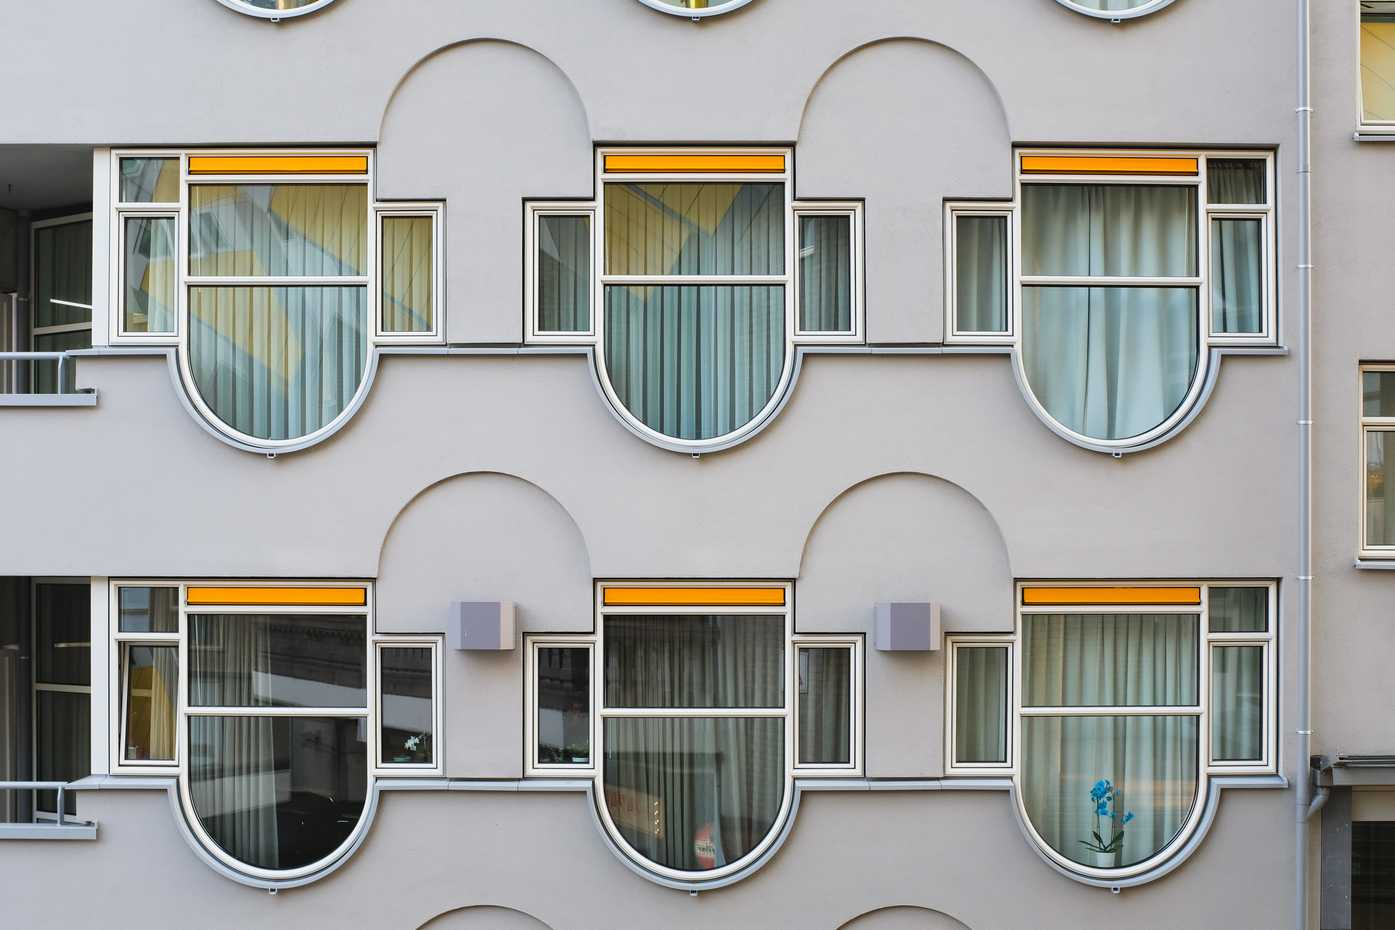 Quirky, rounded windows.